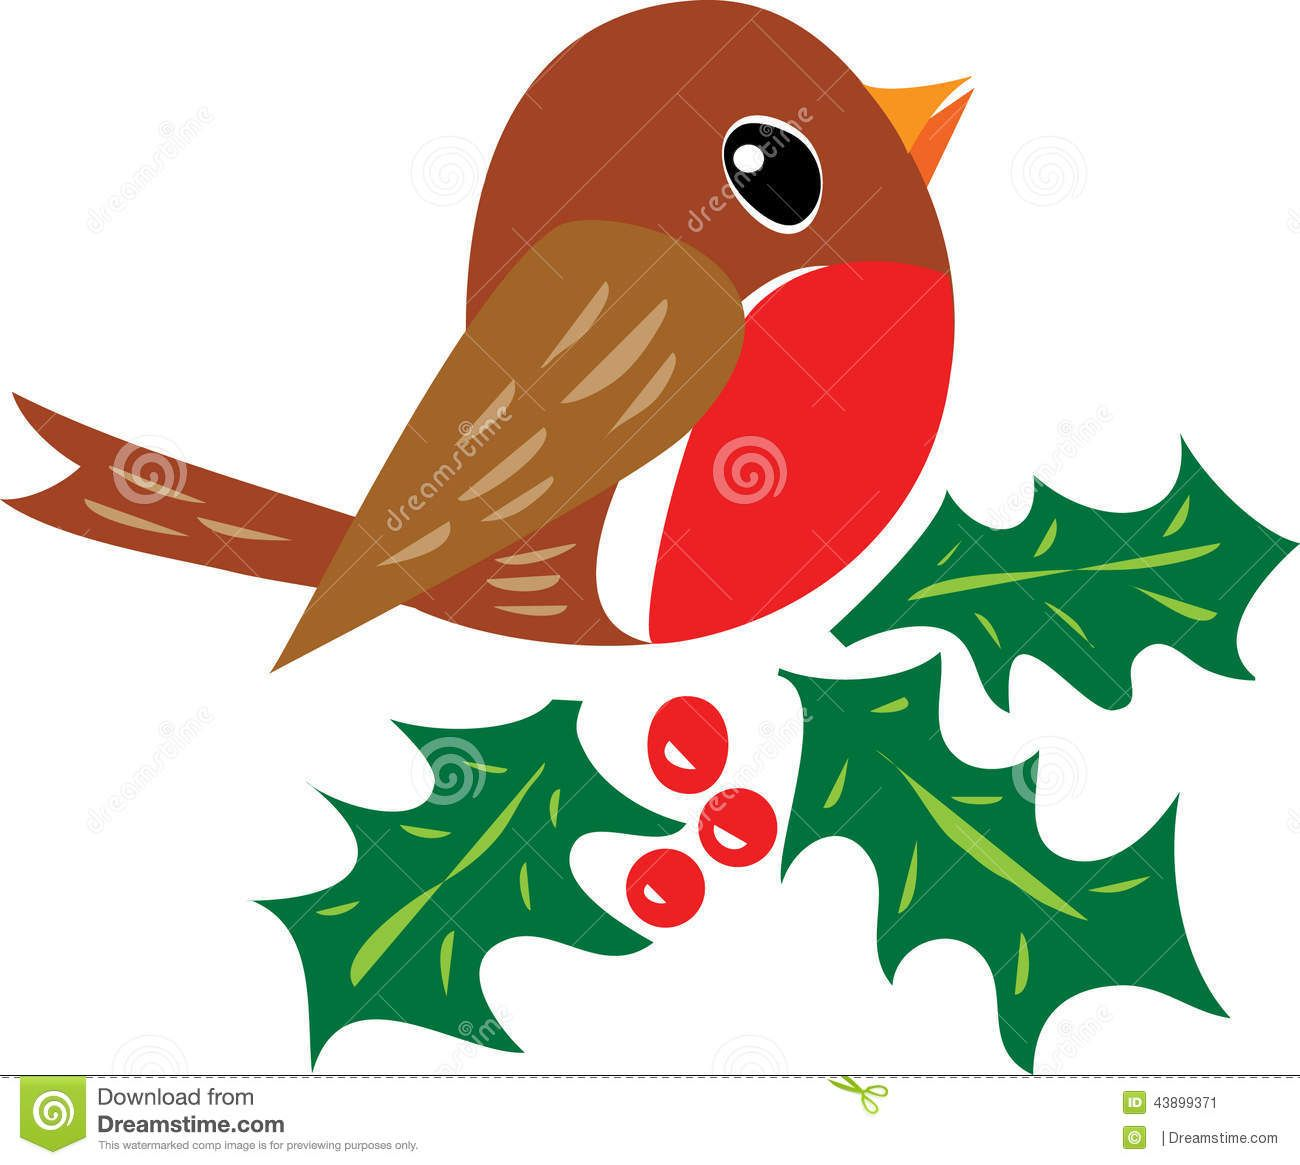 robin redbreast robin redbreast christmas crafts bird drawings robin redbreast robin redbreast